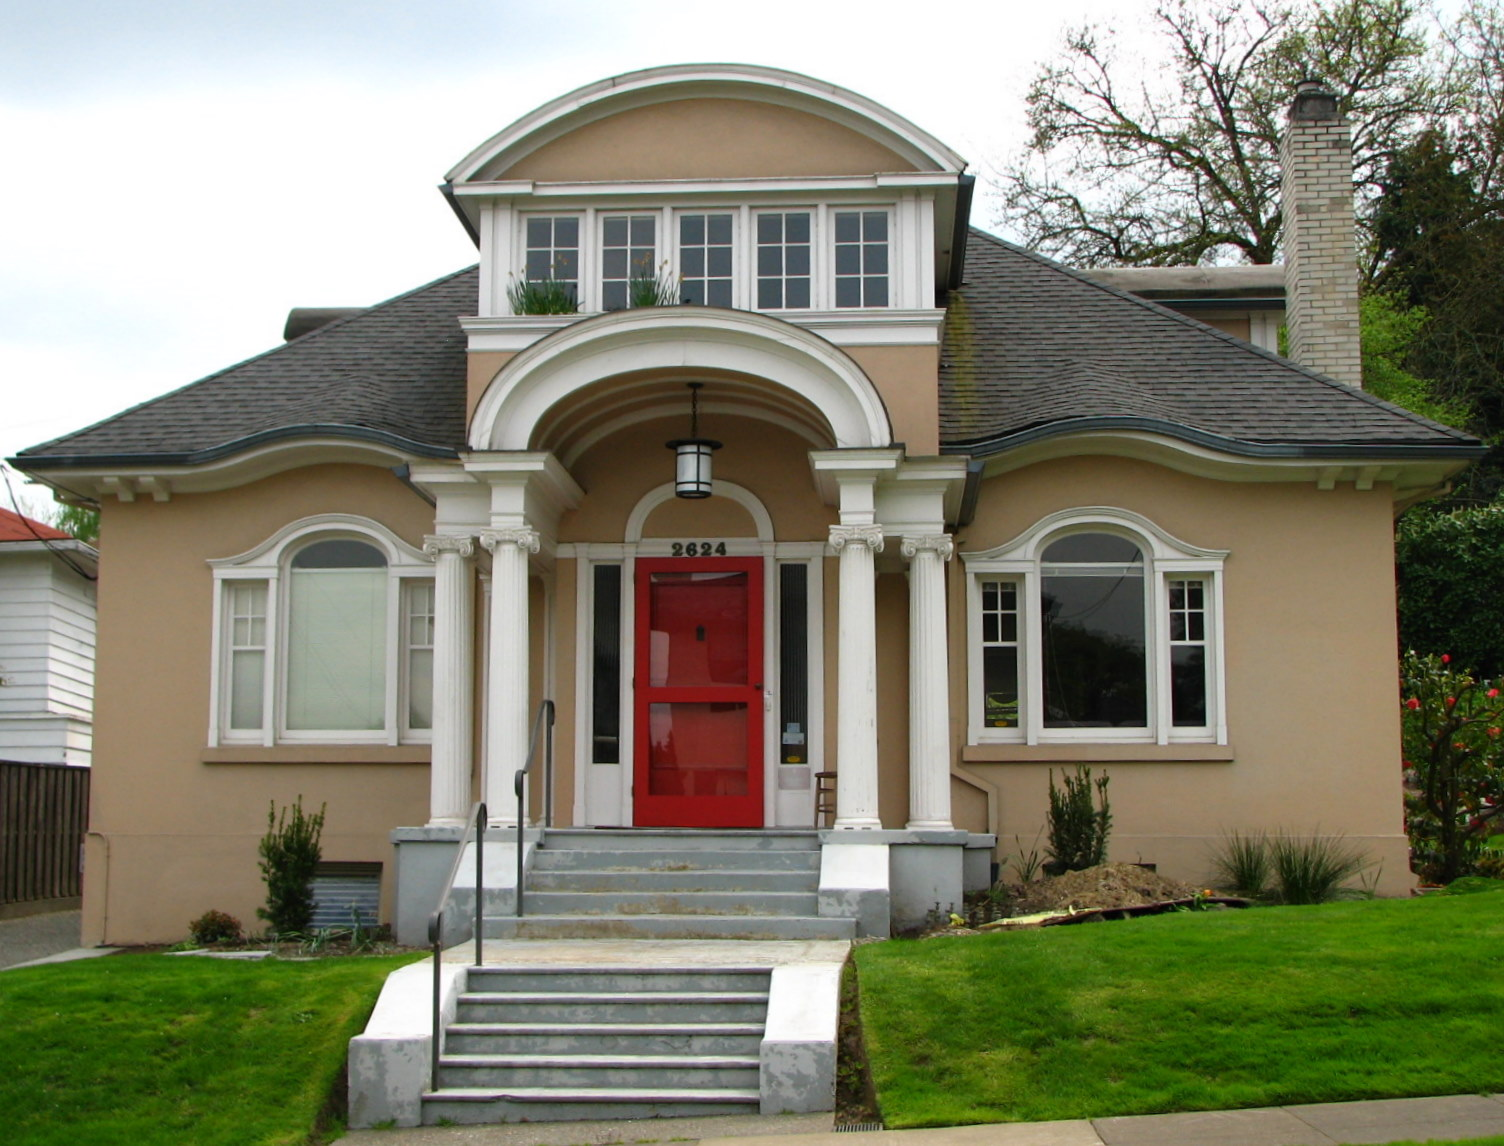 FileRicen House Front Portland Oregonjpg Wikimedia